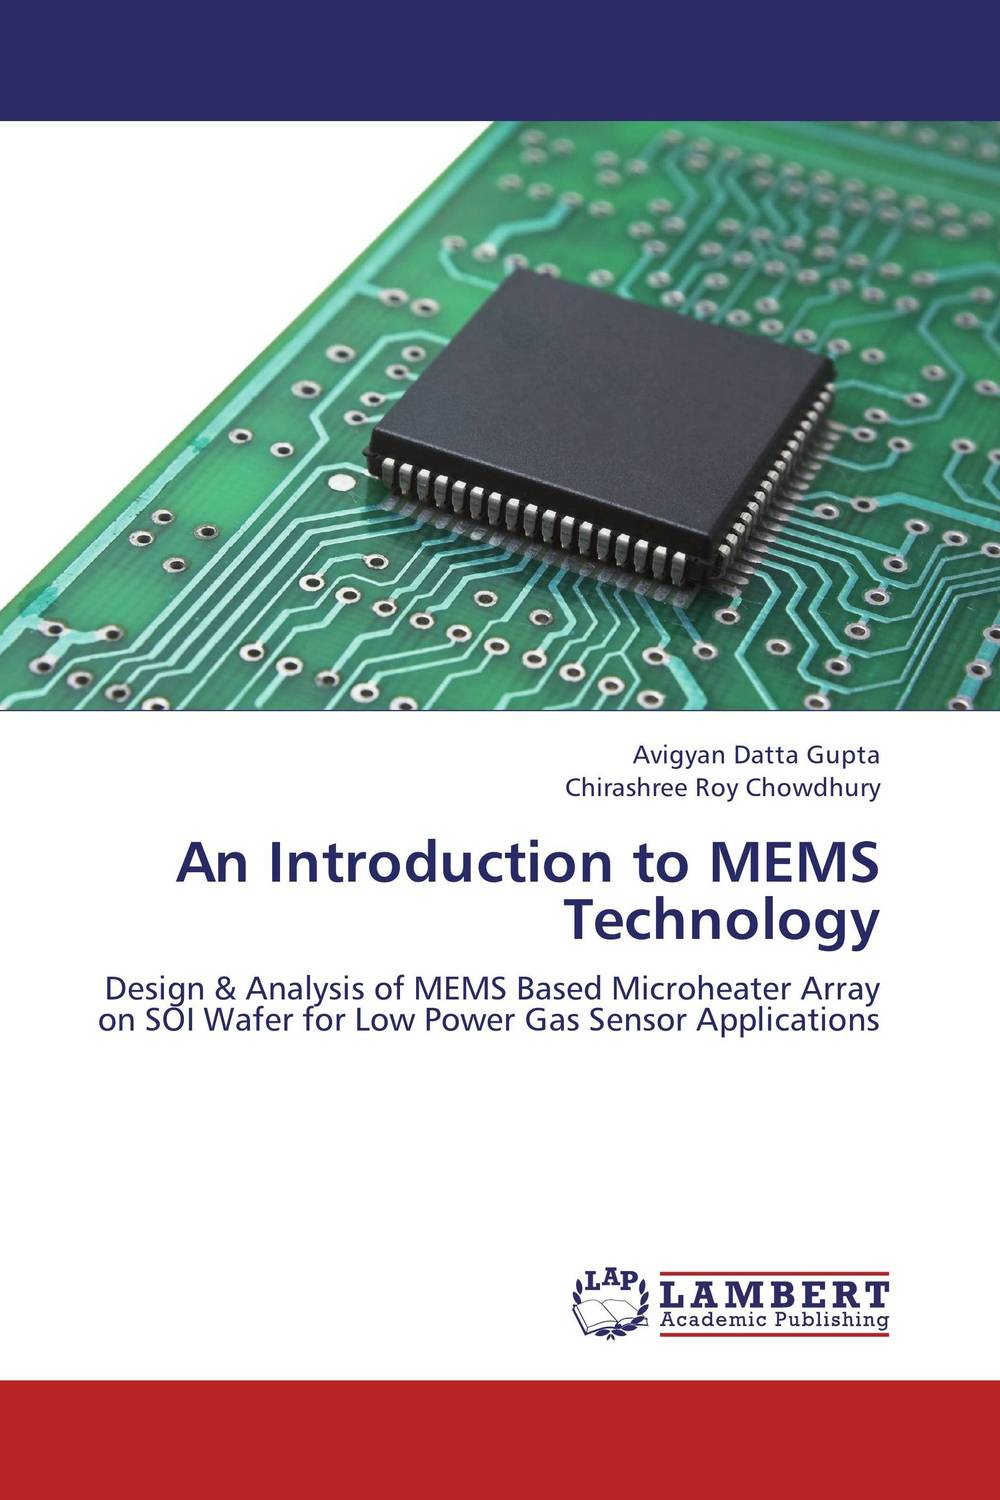 An Introduction to MEMS Technology minhang bao analysis and design principles of mems devices